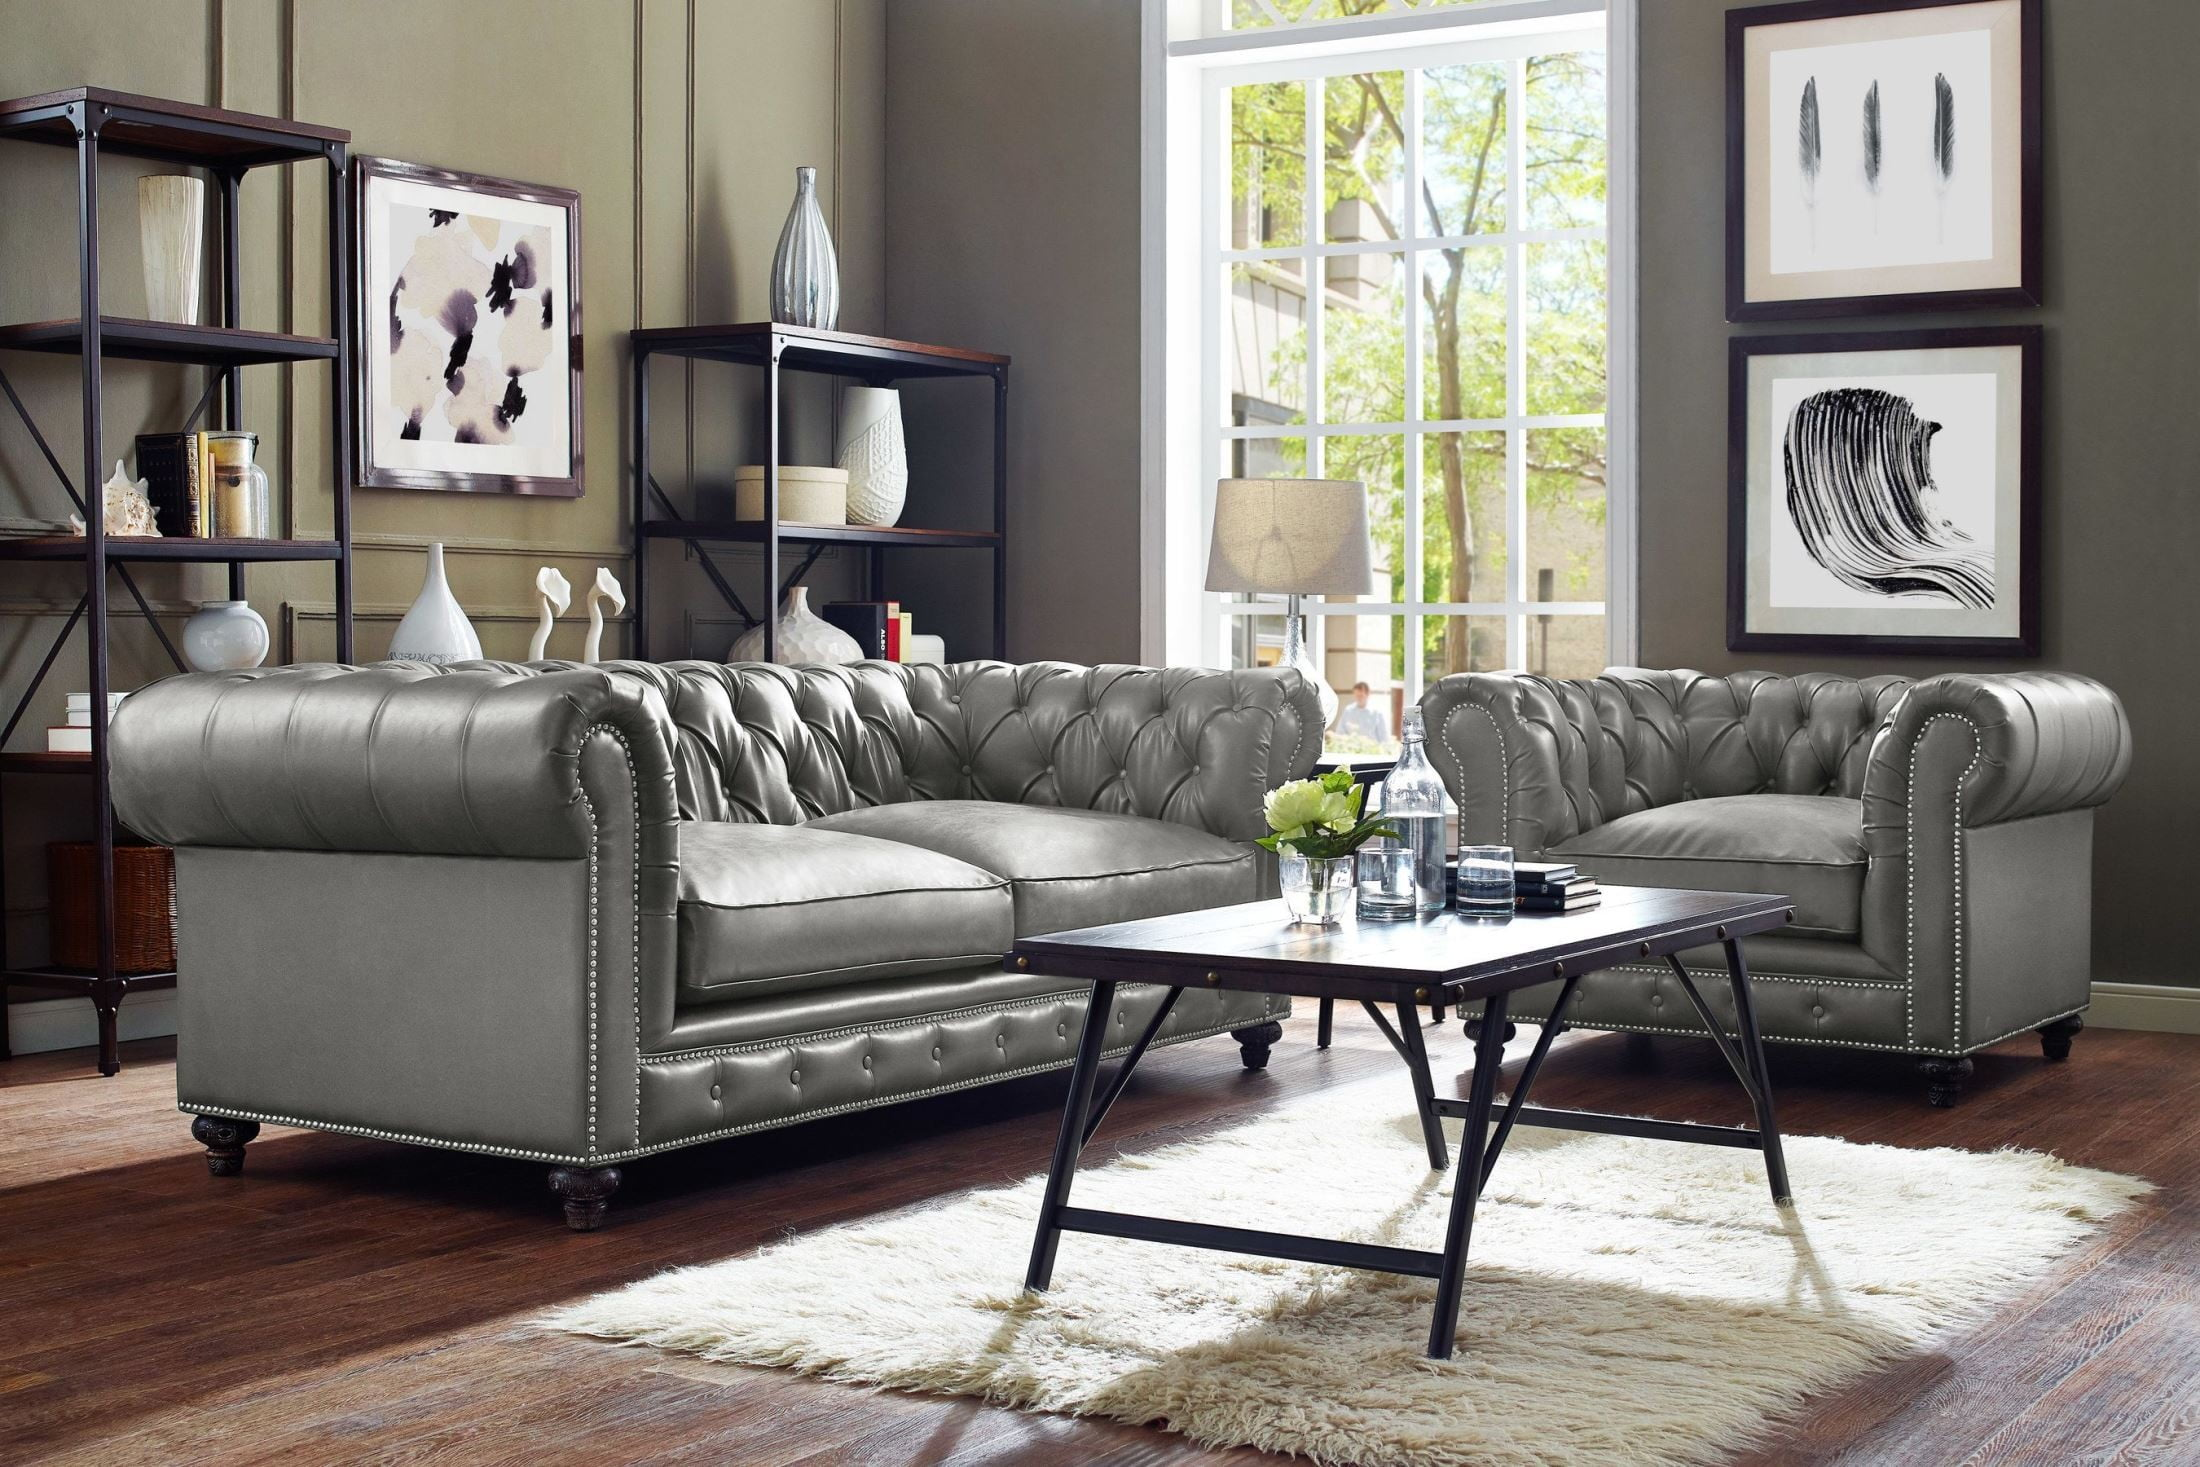 durango rustic grey living room set from tov coleman furniture. Black Bedroom Furniture Sets. Home Design Ideas